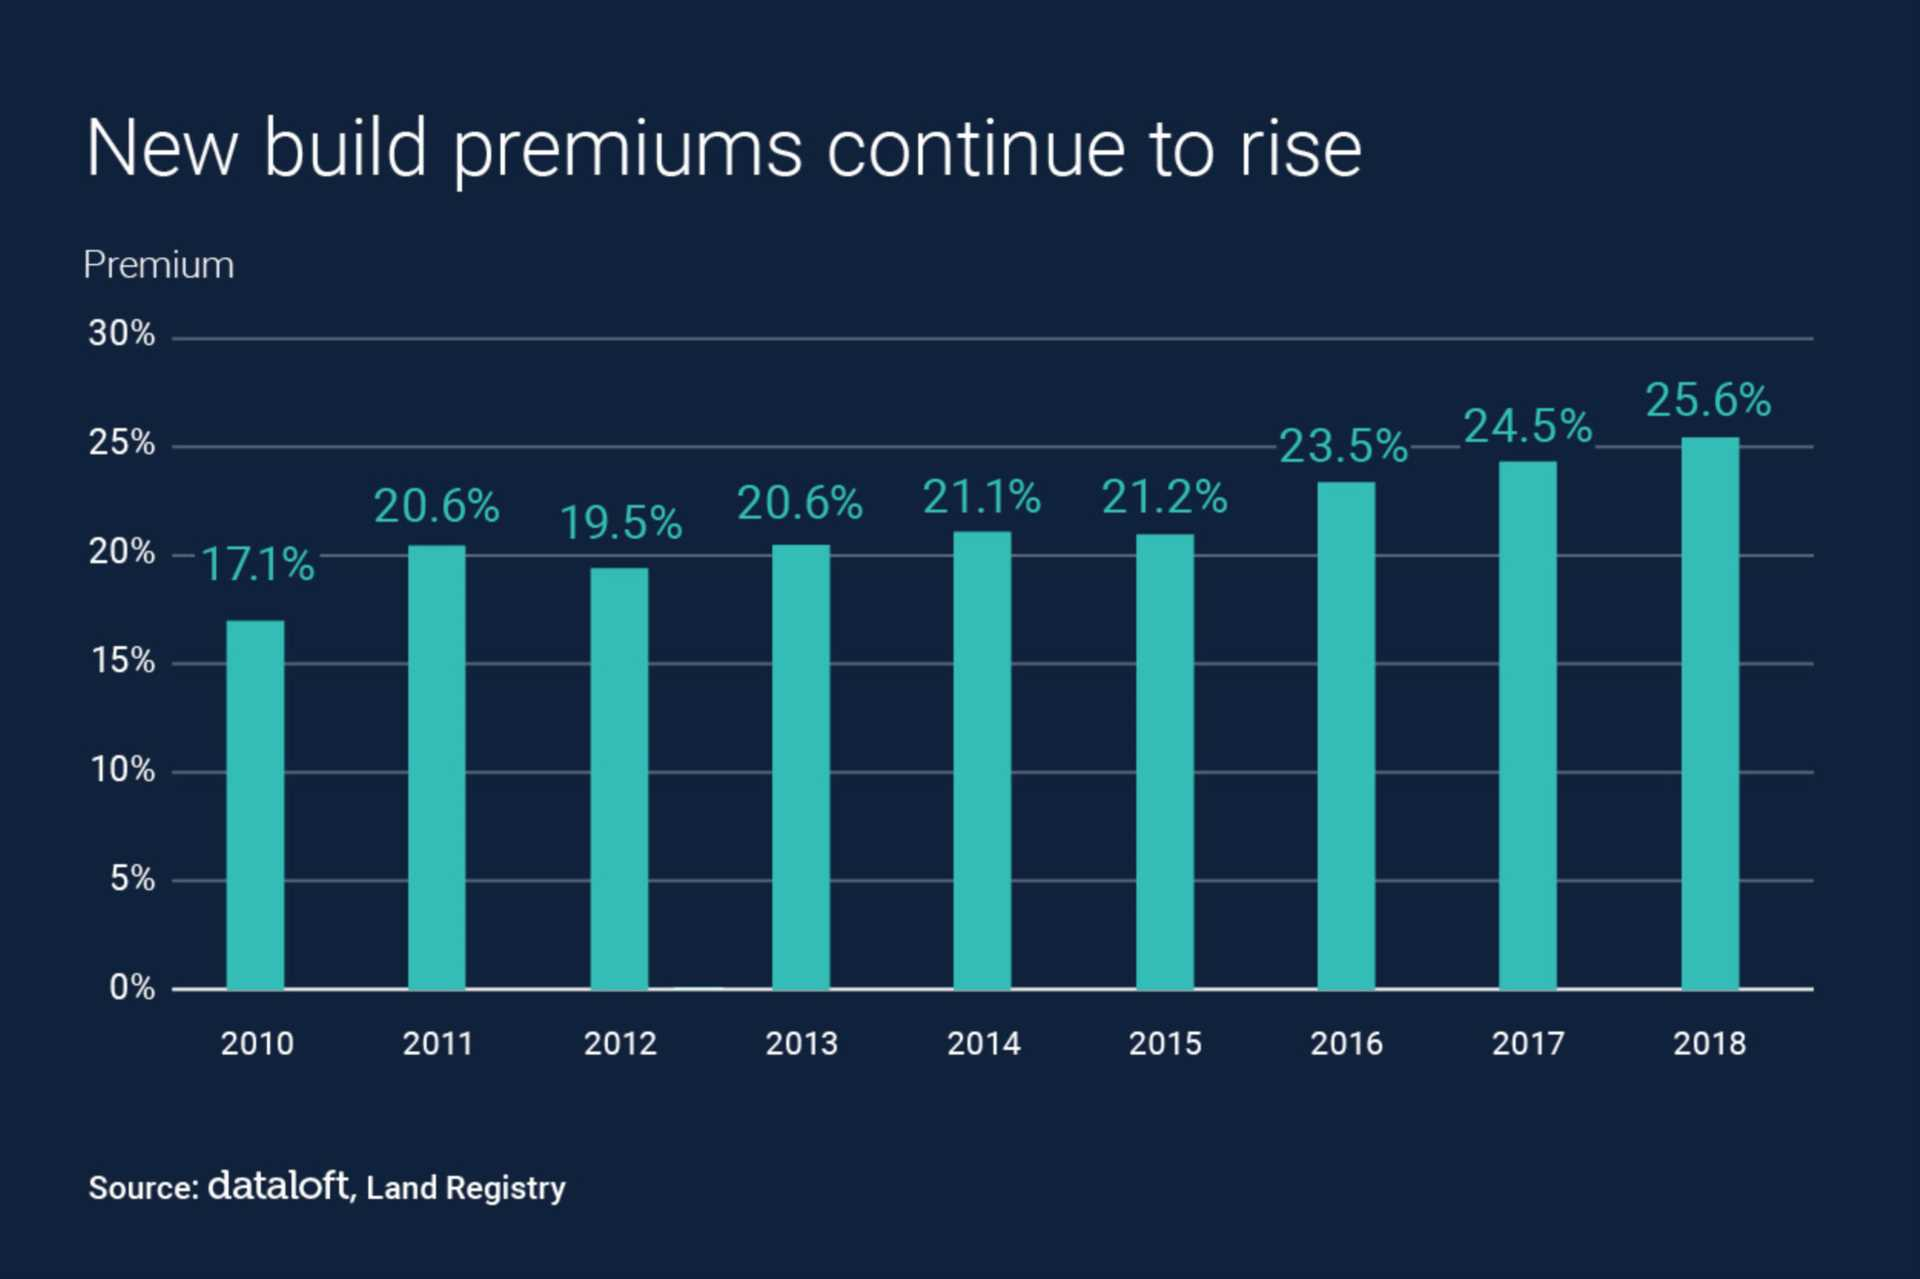 New Build Premiums Continue To Rise